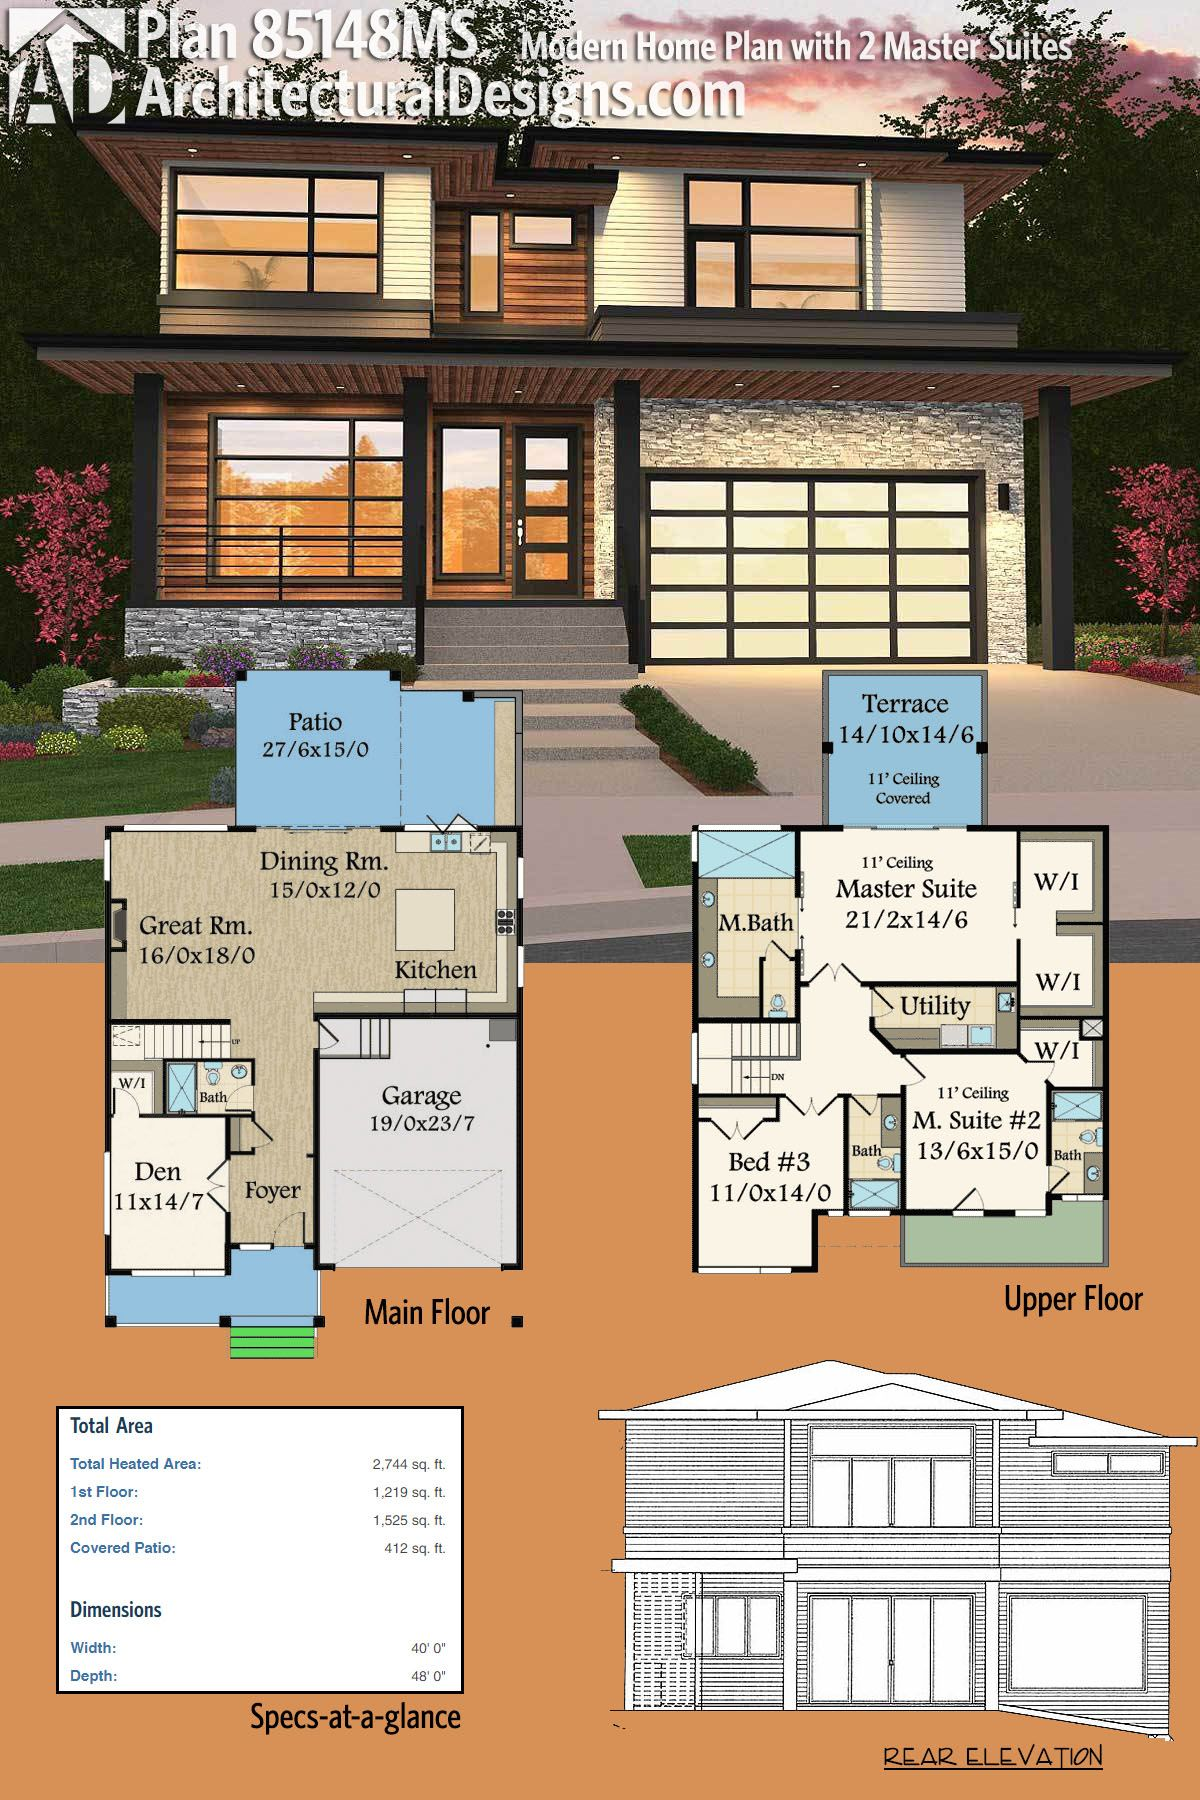 Plan MS Modern Home Plan with 2 Master Suites